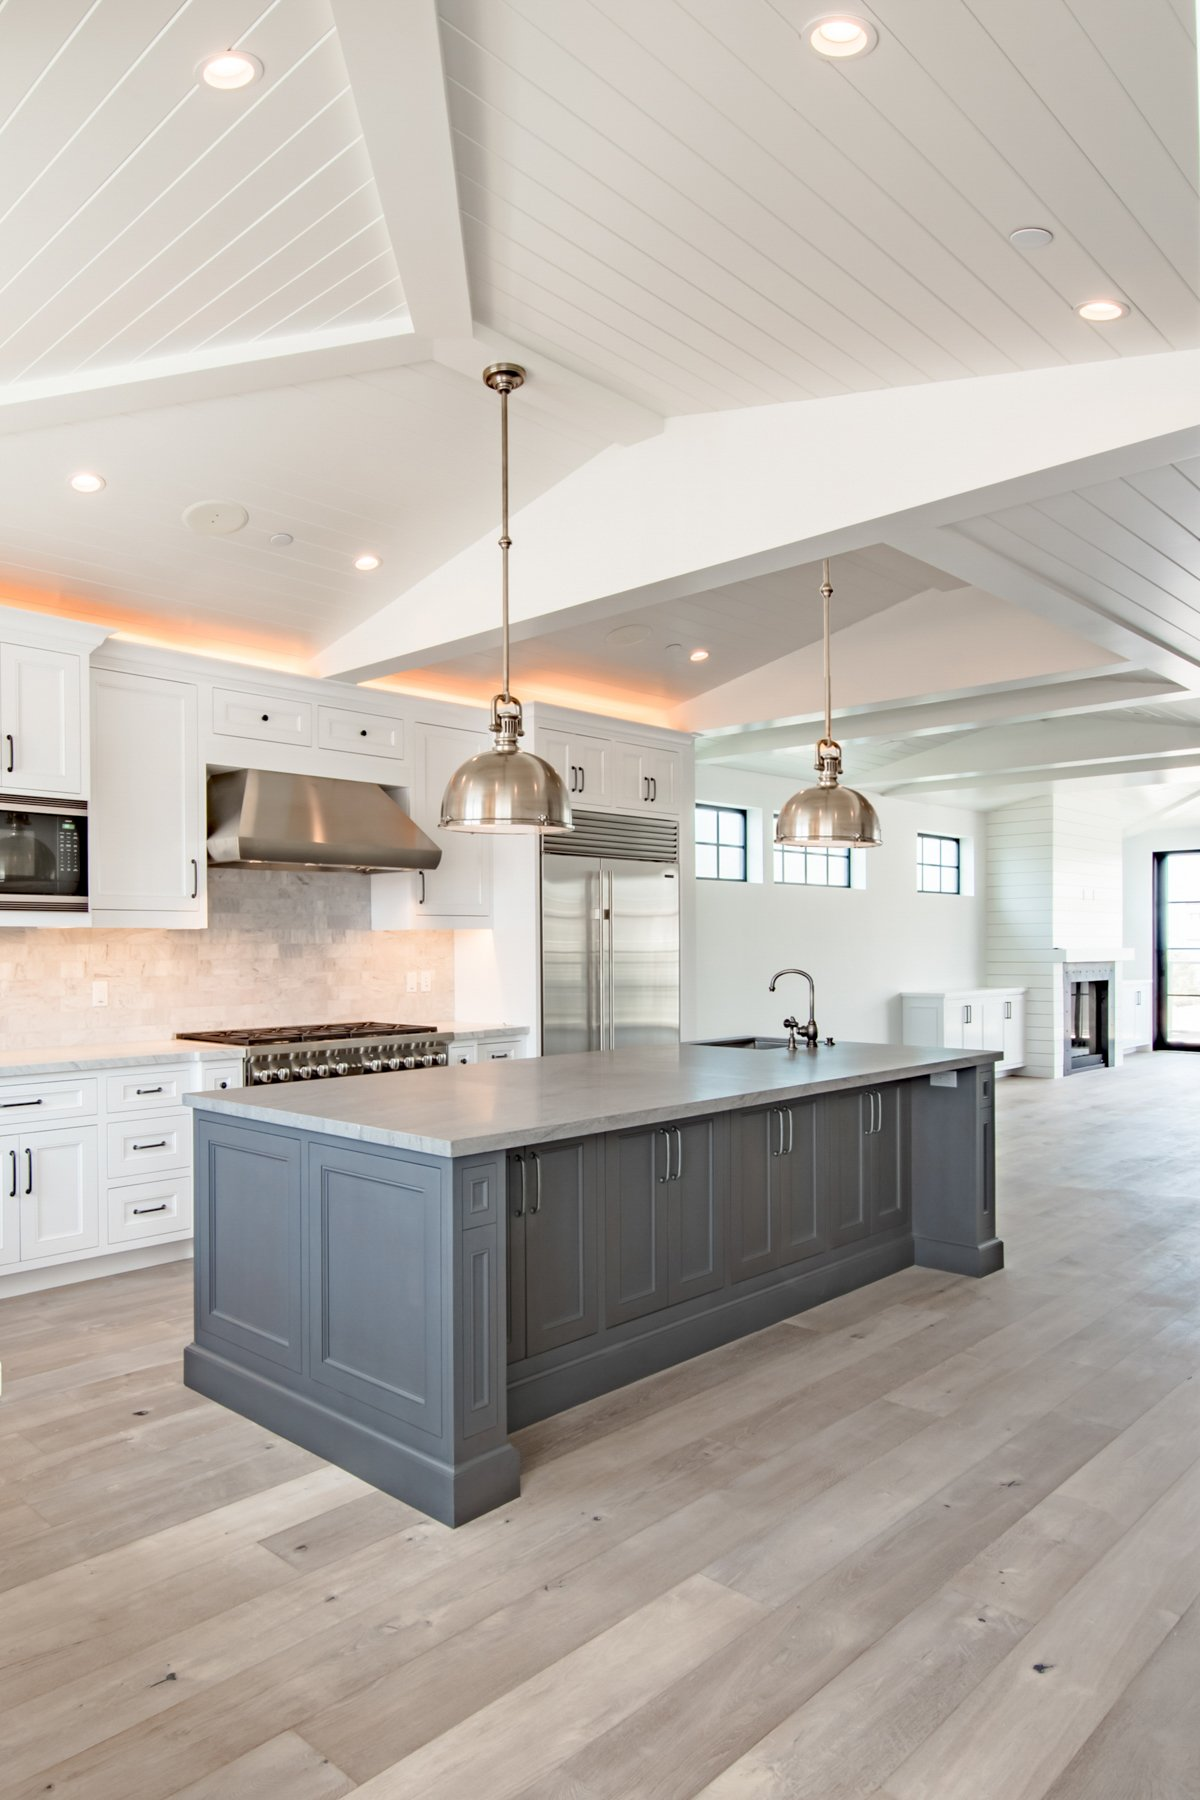 Newly built California beach house in farm house style white board and batten ceilings and open floor plan